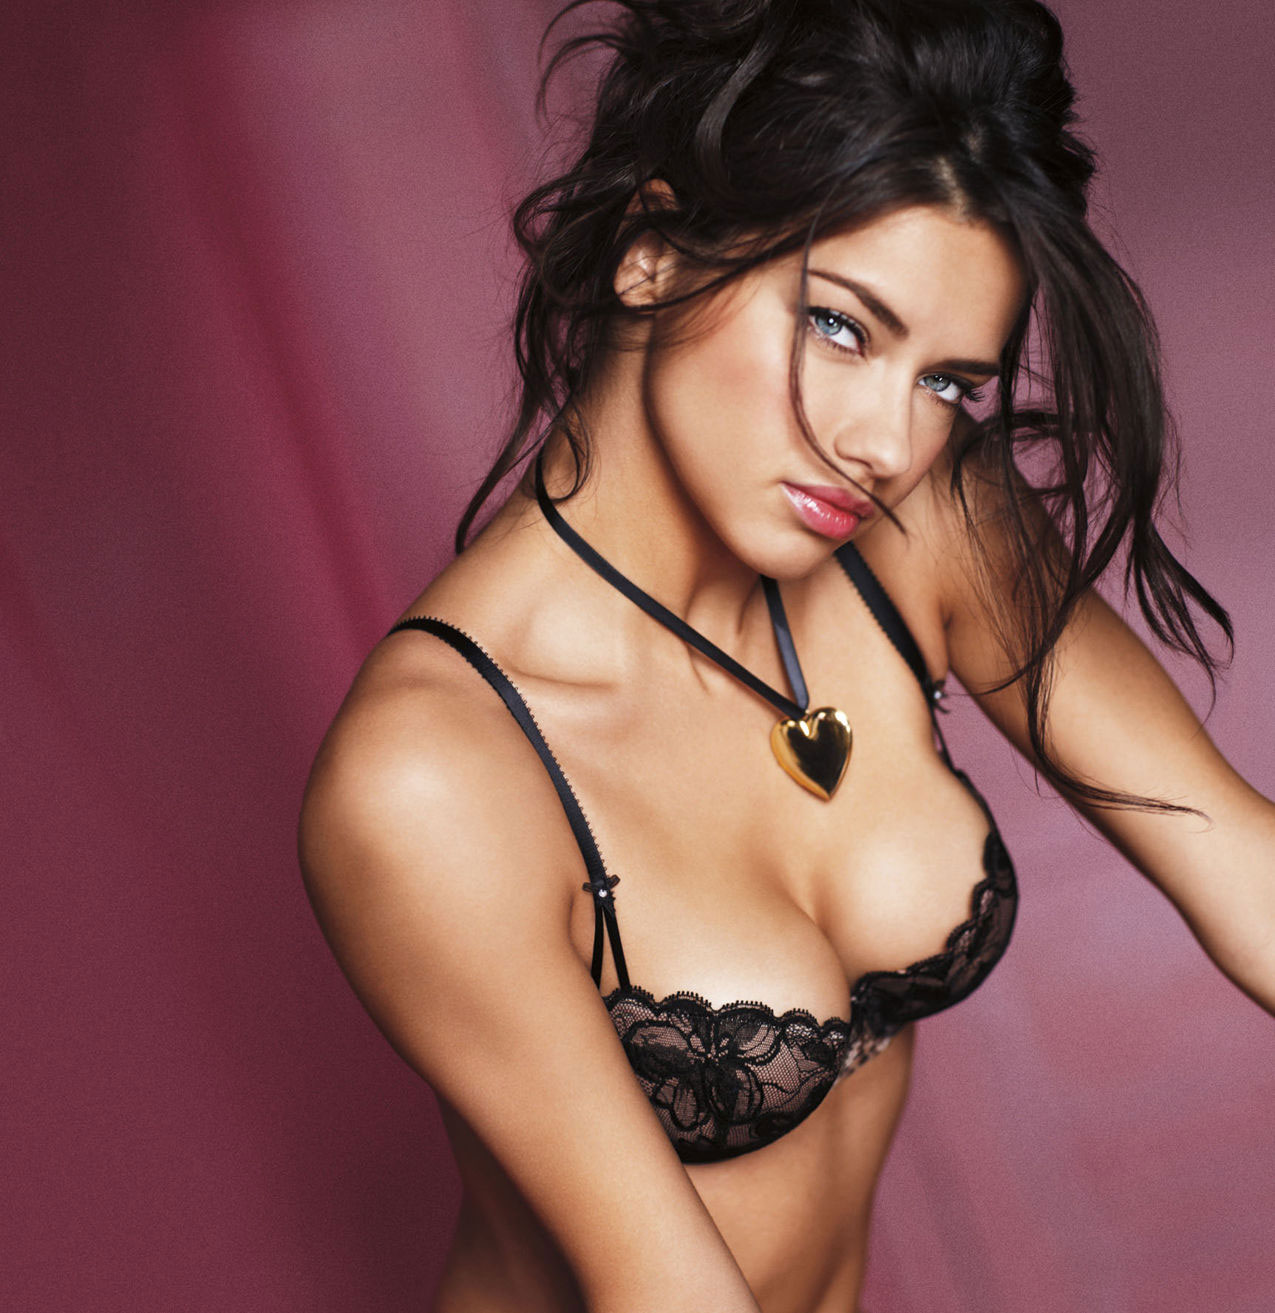 Victoria's Secret Love Me Collection – Hottest Gift Ideas for the Valentine's Day